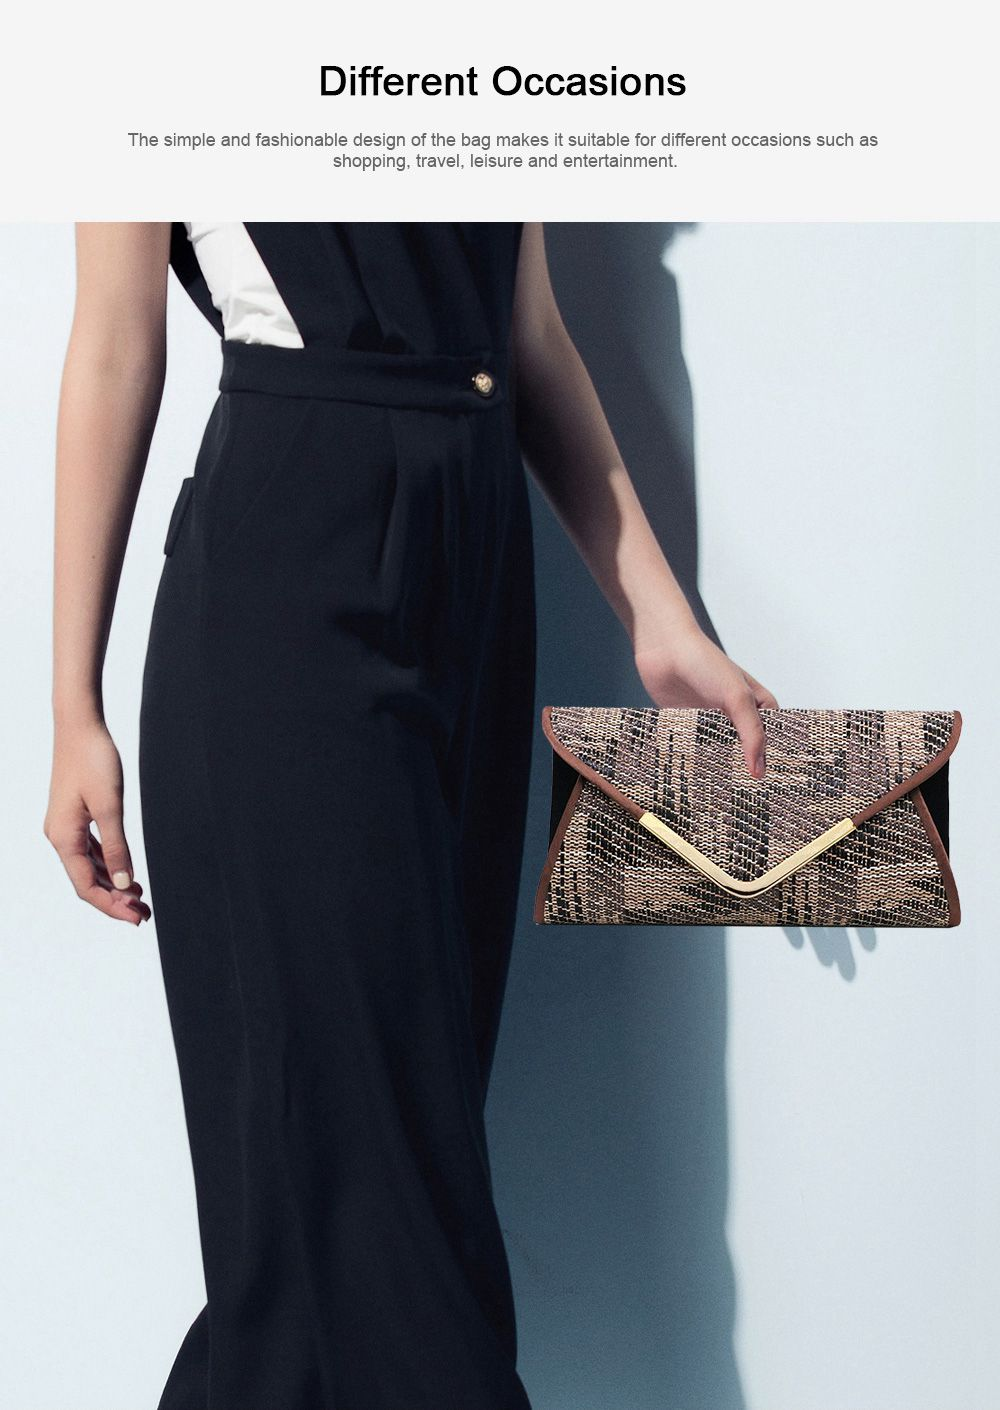 Weave Evening Purse for Woman, Fashionable Hand Clutch Bag, Diamond-shape Handbag for Party, Banquet Chain Bag Shoulder Bag 5